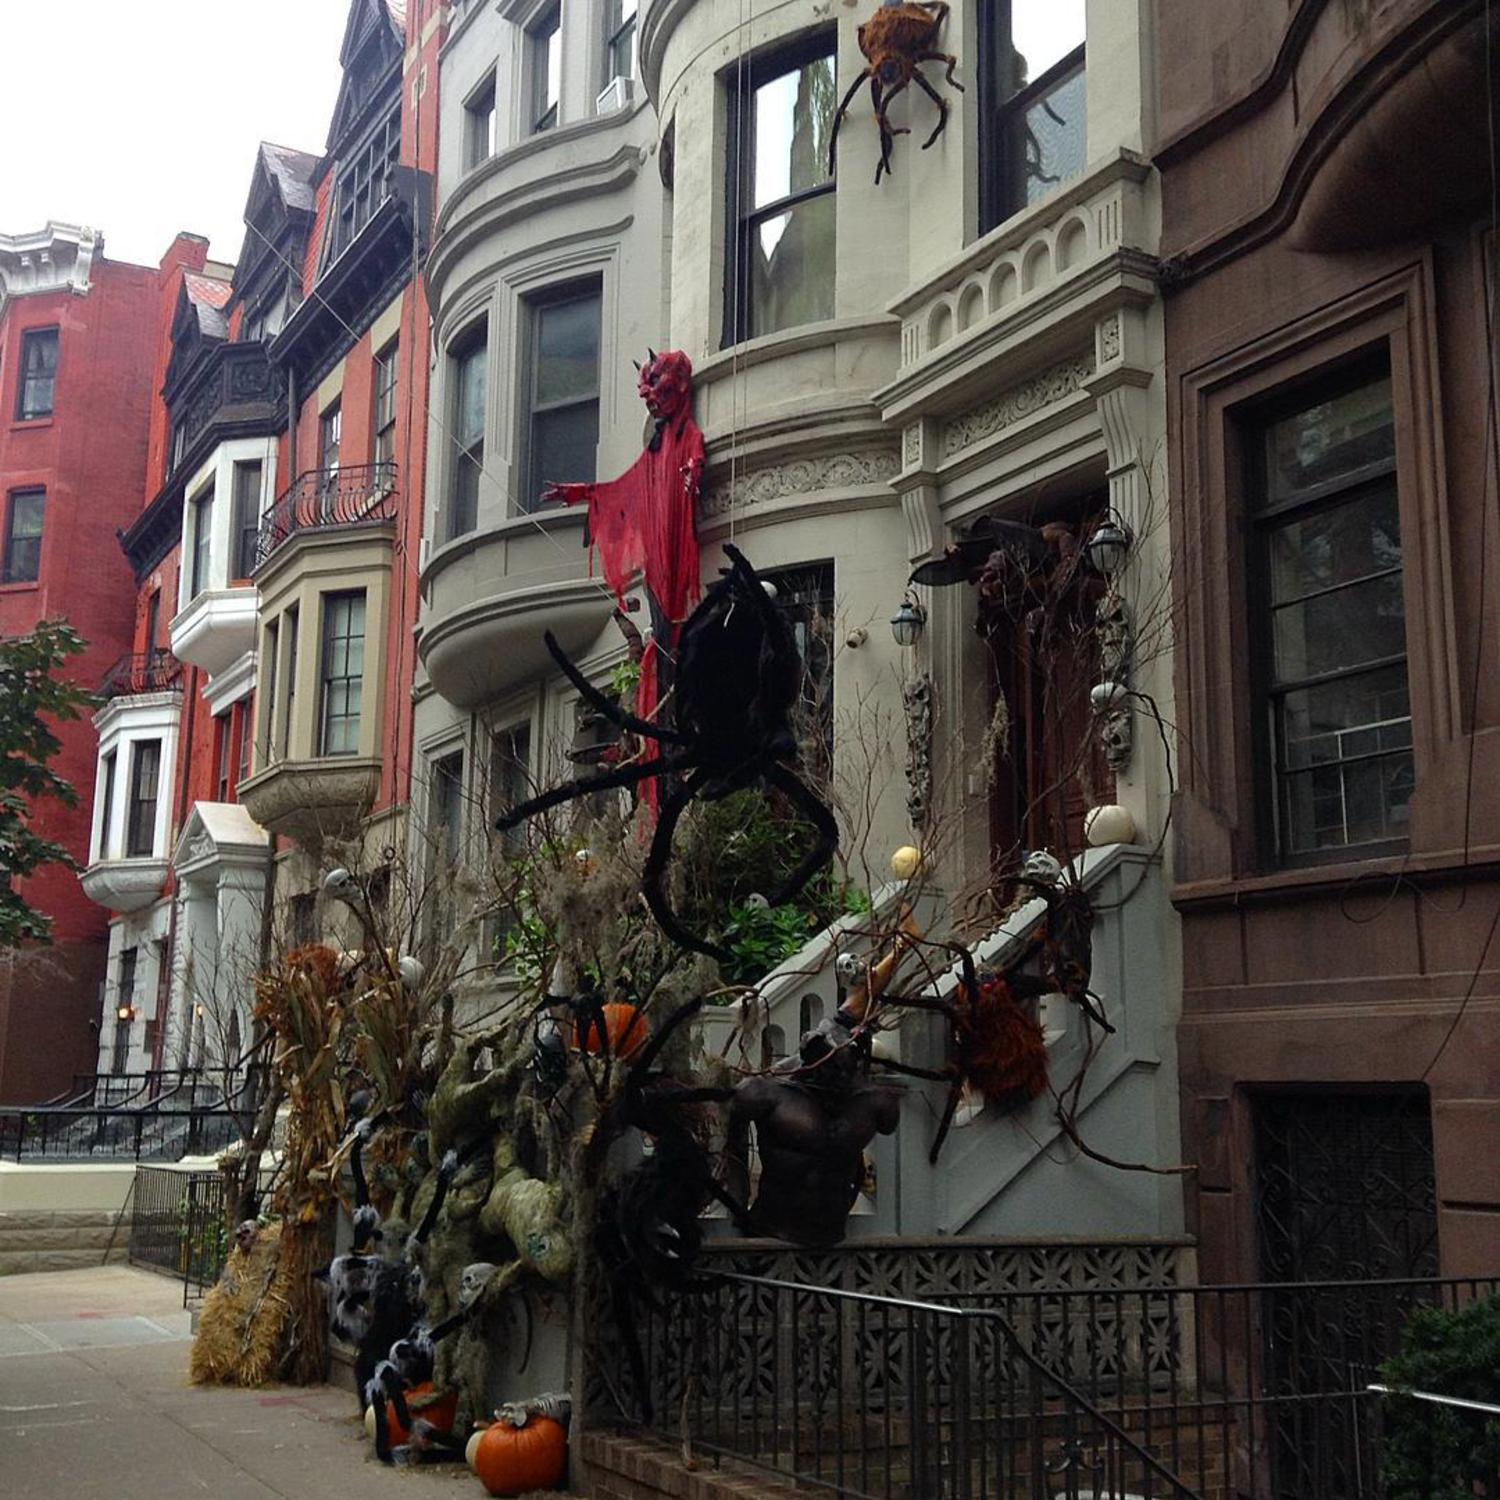 #Halloween on W. 69th street. Some of the other neighbors on the block are getting into the spirit, but they still can't compete with this place. #MidtownCommute #runNYC #humpday